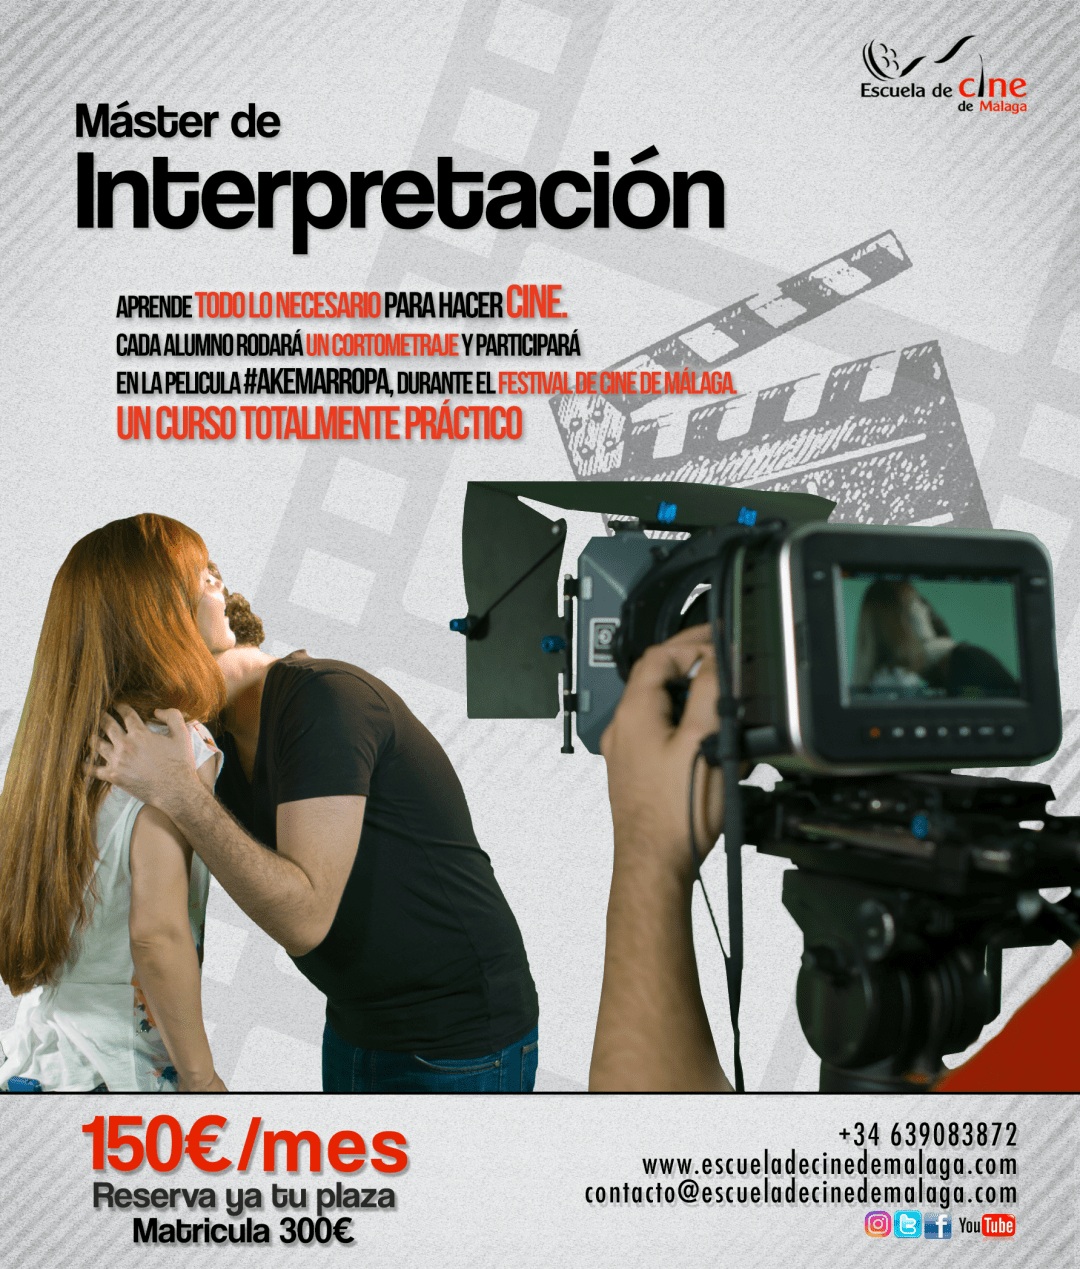 Master de Interpretacíon